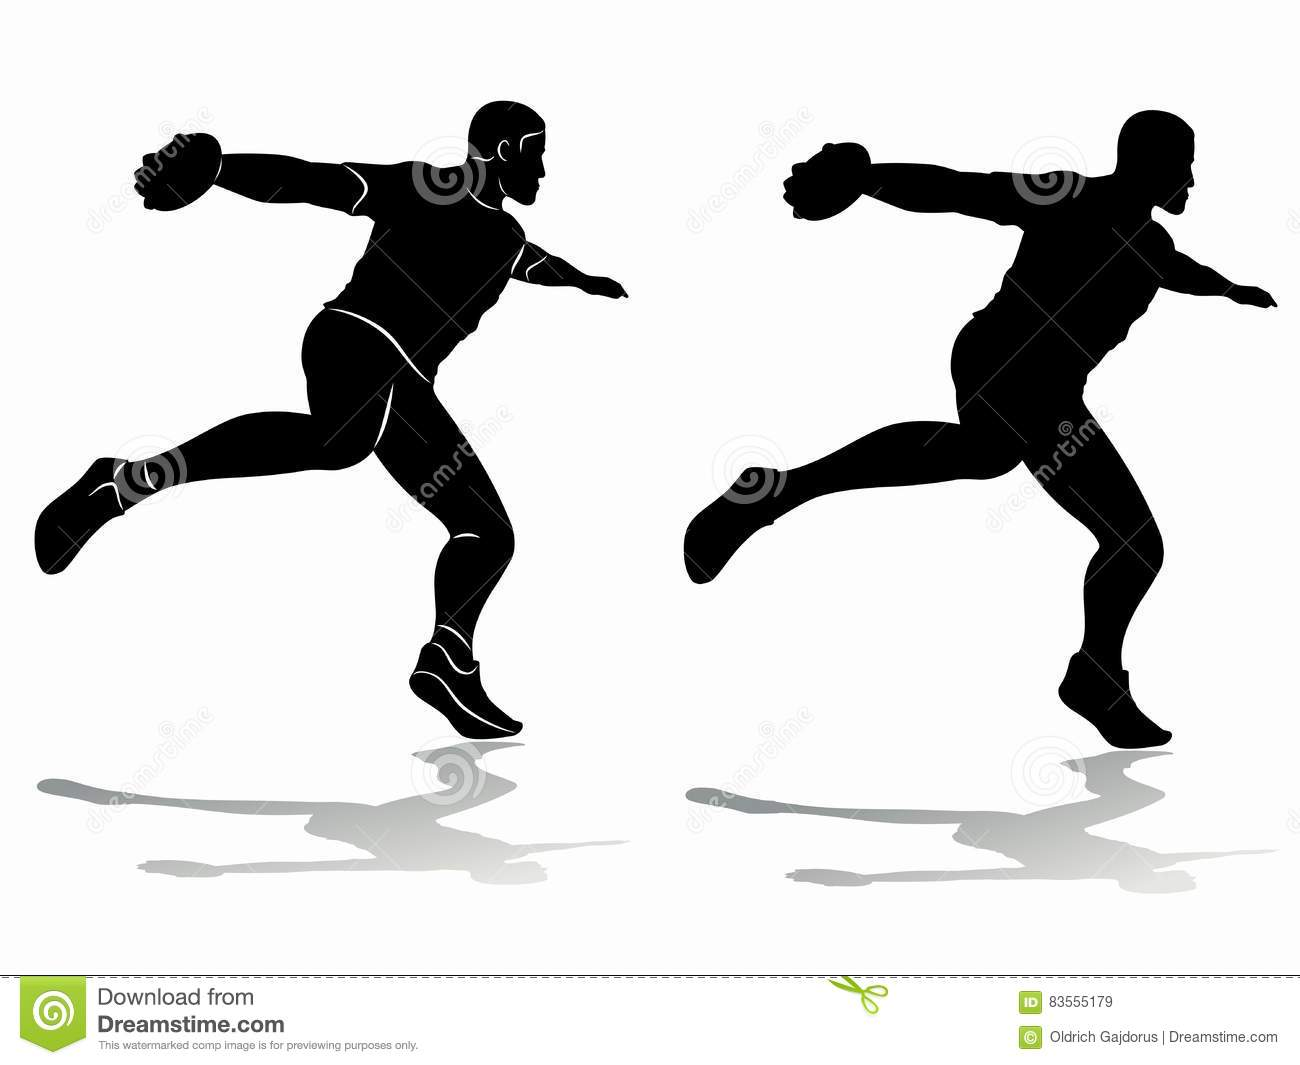 Discus Throw Silhouette | Free vector silhouettes |Discus Thrower Silhouette